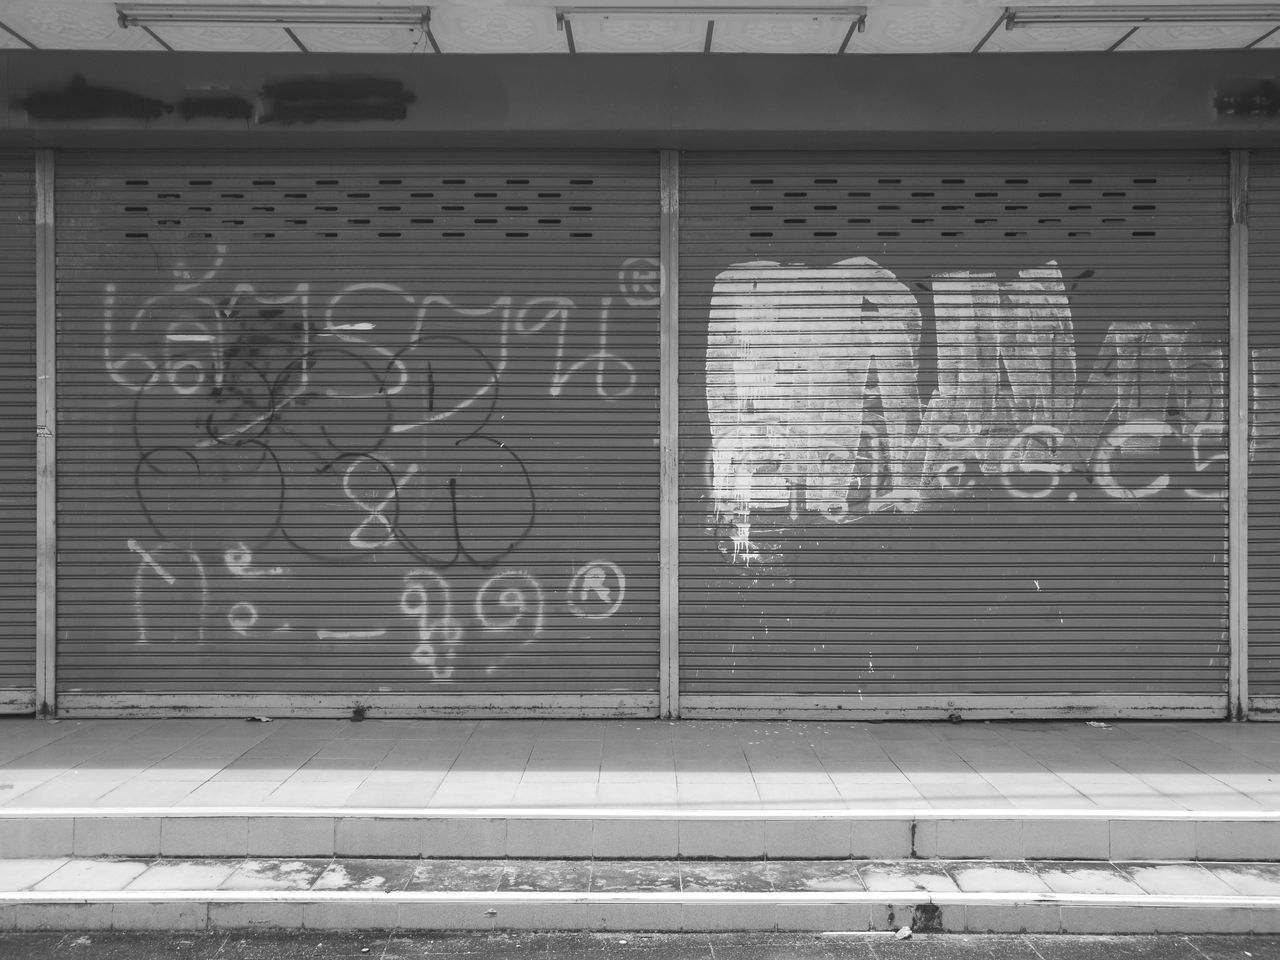 HuaweiP9 Building Graffiti Closed Closed Door Shutter_door